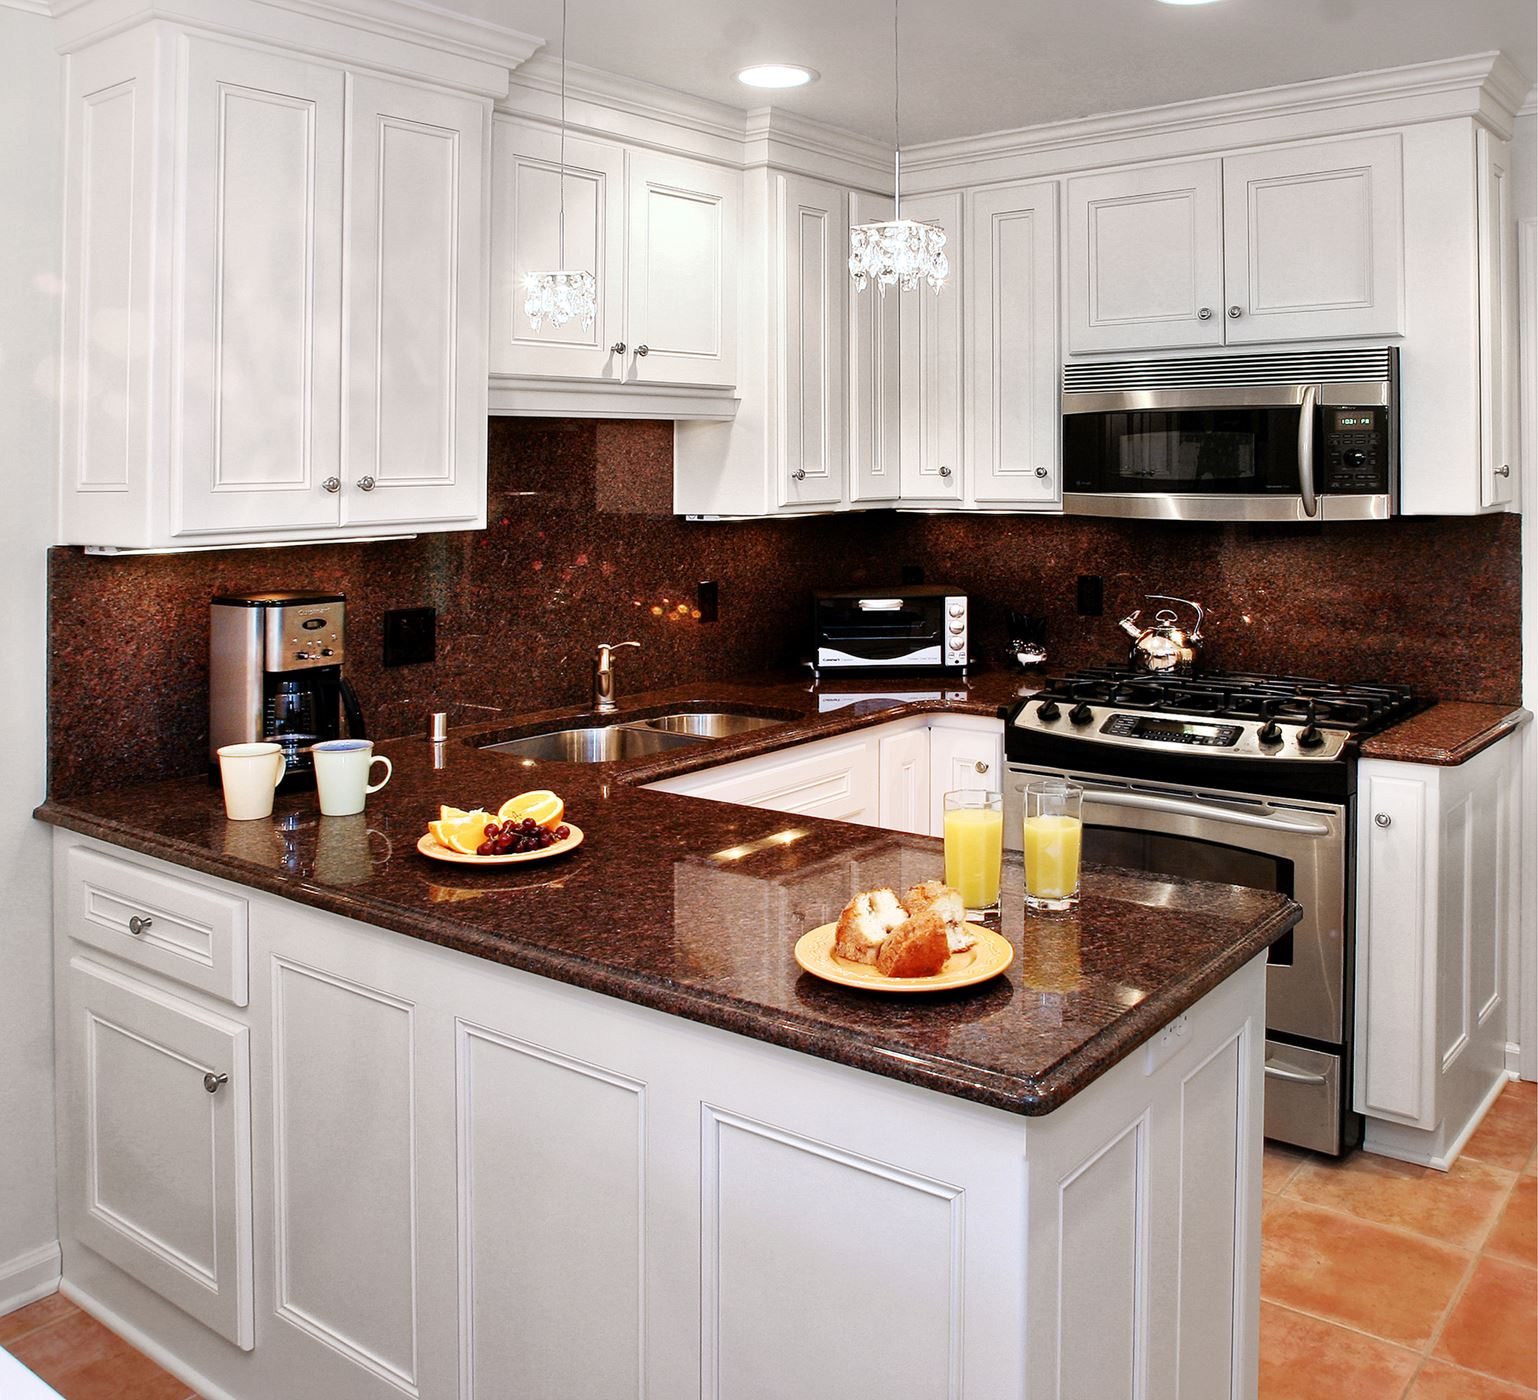 & Space Saver | Gallery | Custom Wood Products - Handcrafted Cabinets